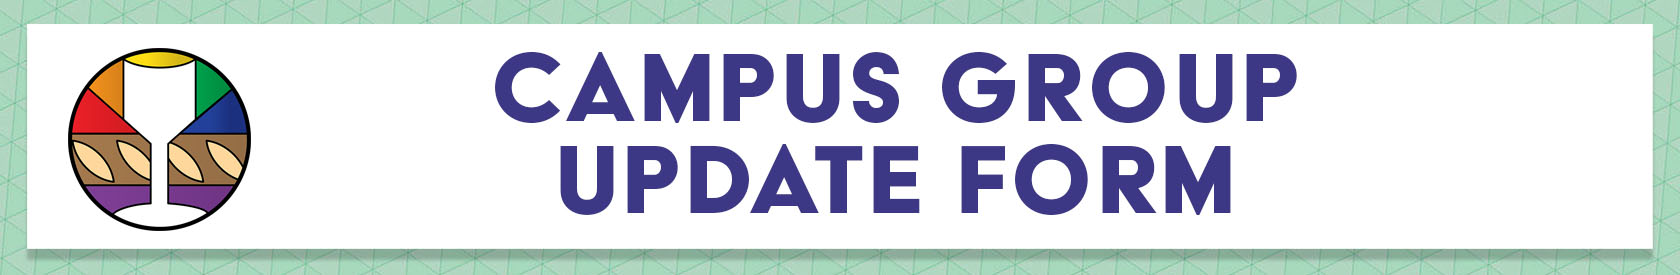 Update Your Campus Group's Information